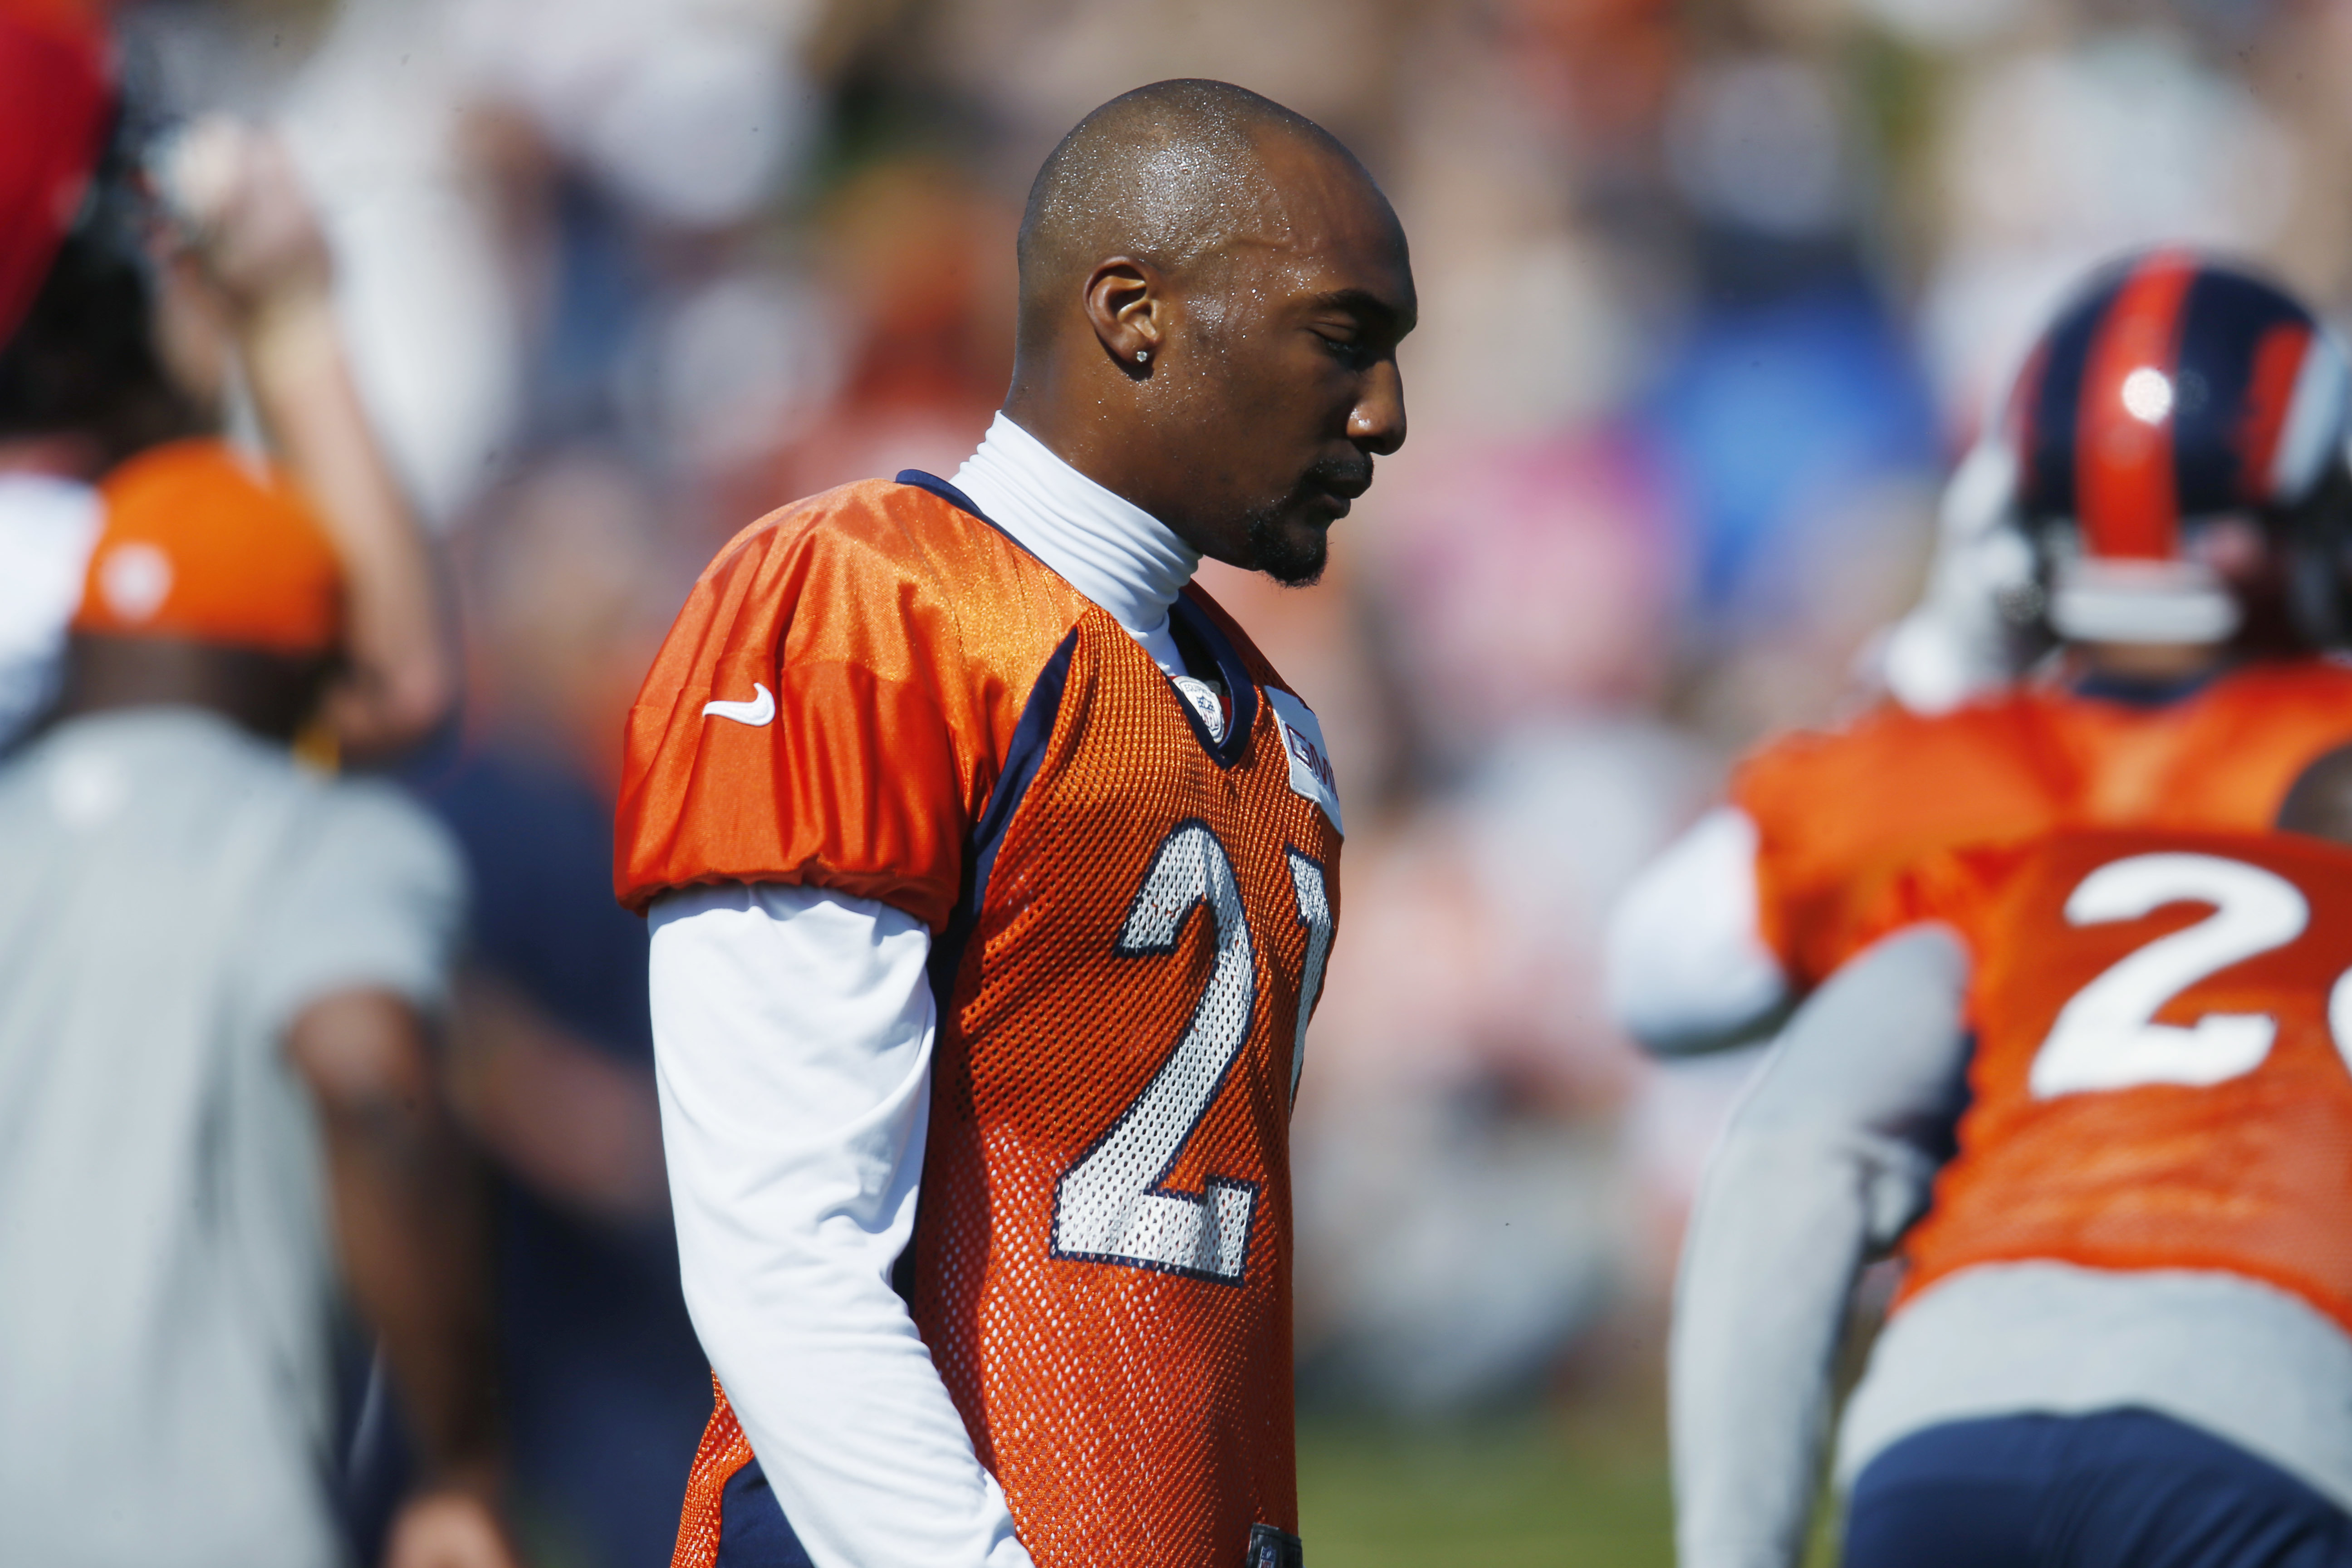 Denver Broncos cornerback Aqib Talib takes part in drills during the team's NFL football practice Monday, Aug. 8, 2016 in Englewood, Colo. (AP Photo/David Zalubowski)